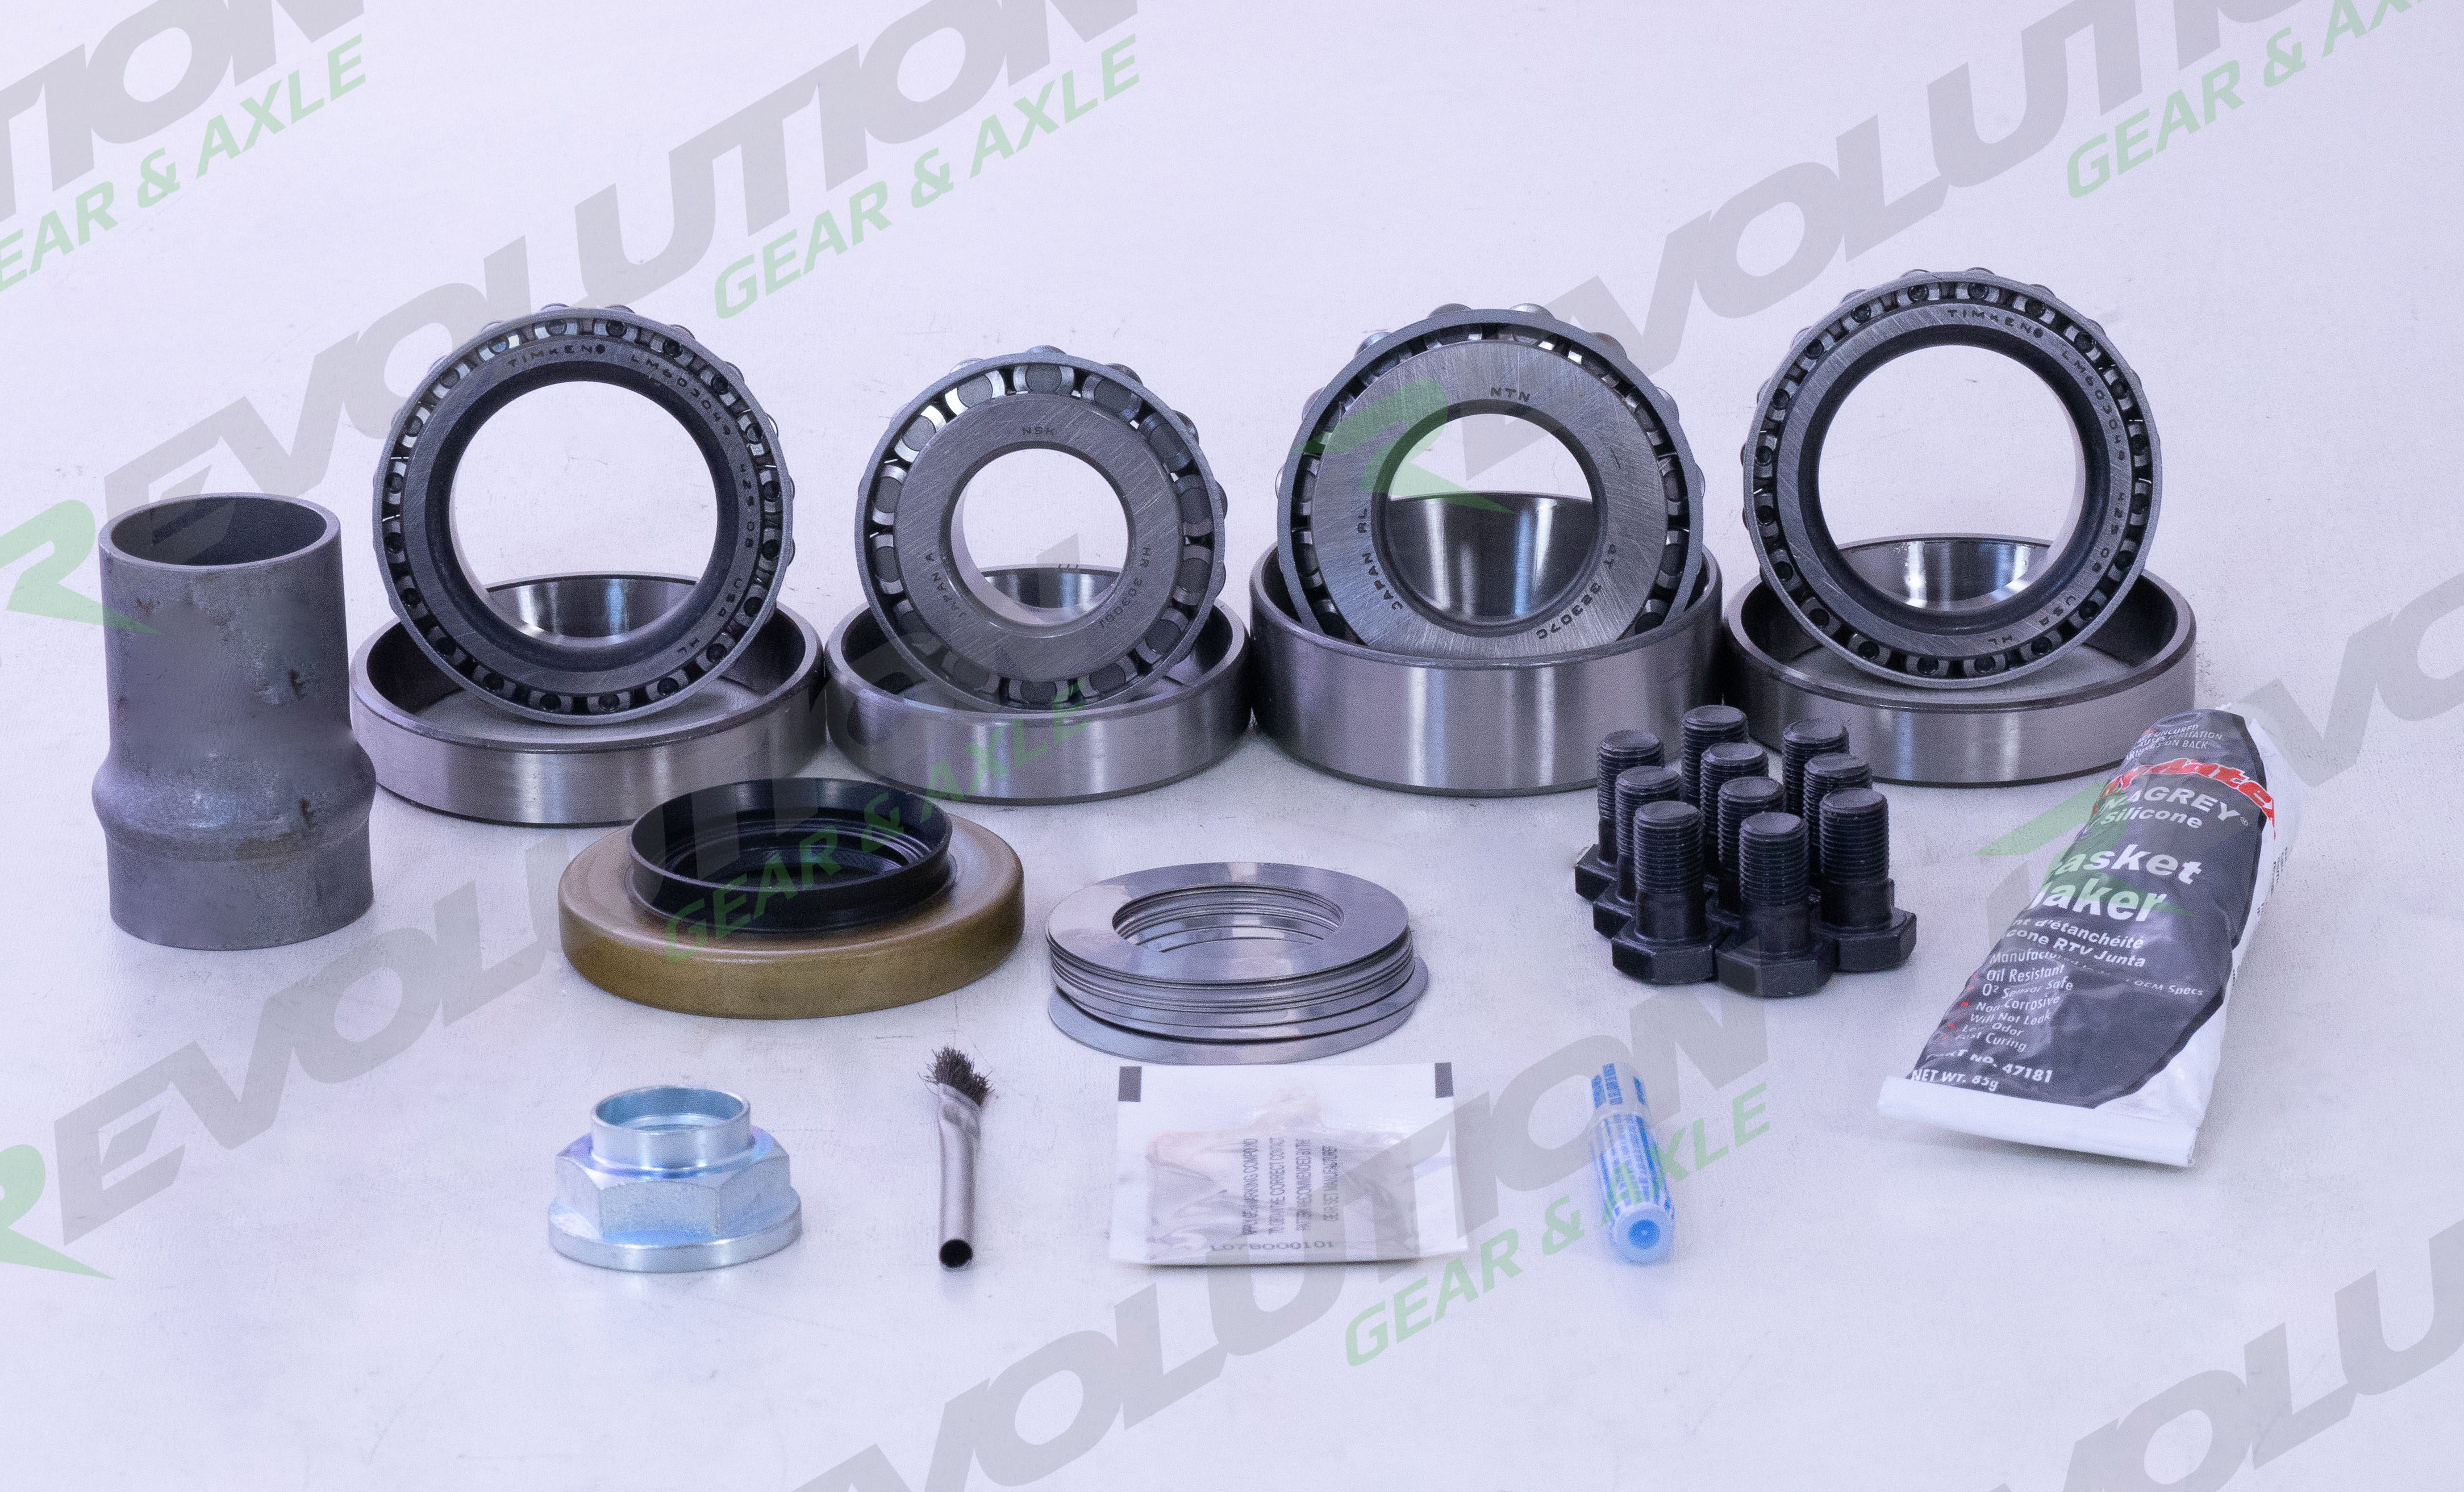 Toy 8 Inch Master Rebuild Kit 4 Cyl Front/Rear 79-86